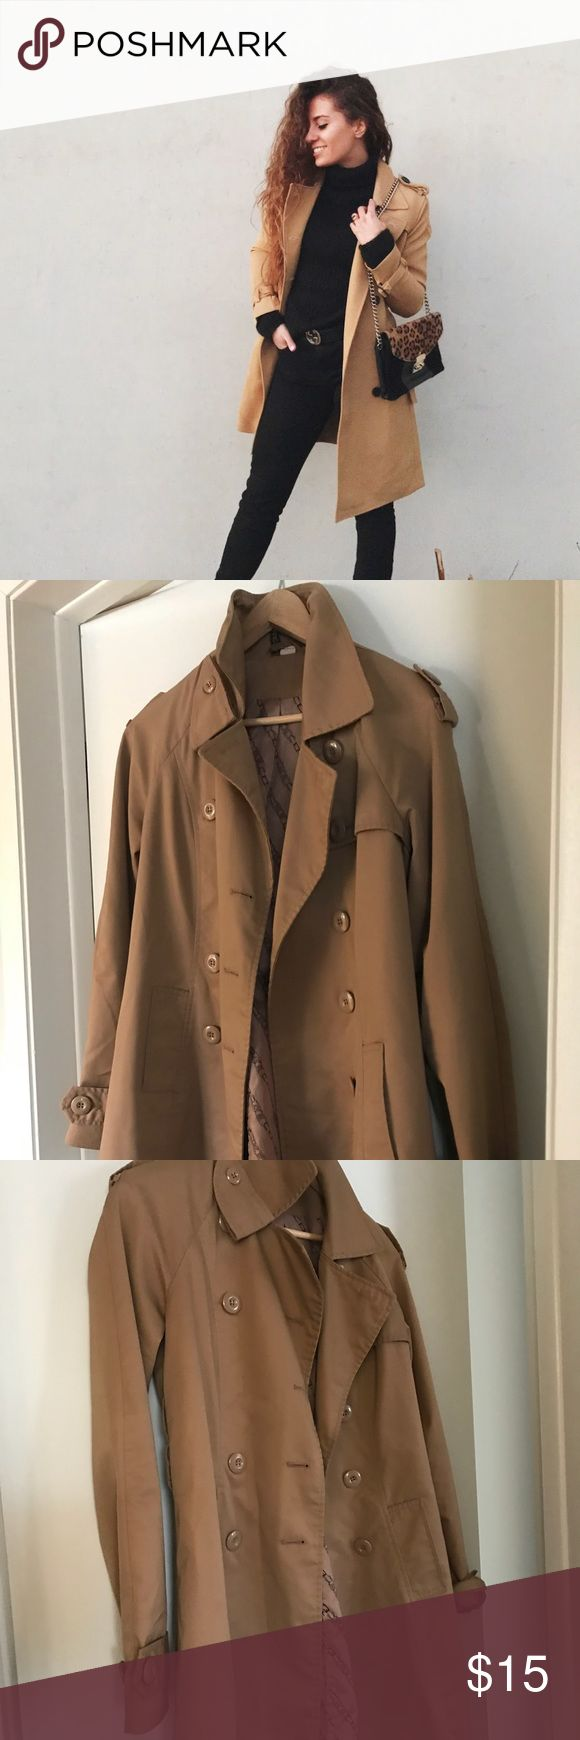 Trench coat Beautiful coat. Good condition. Belt included. From H&M divided collection. H&M Jackets & Coats Trench Coats